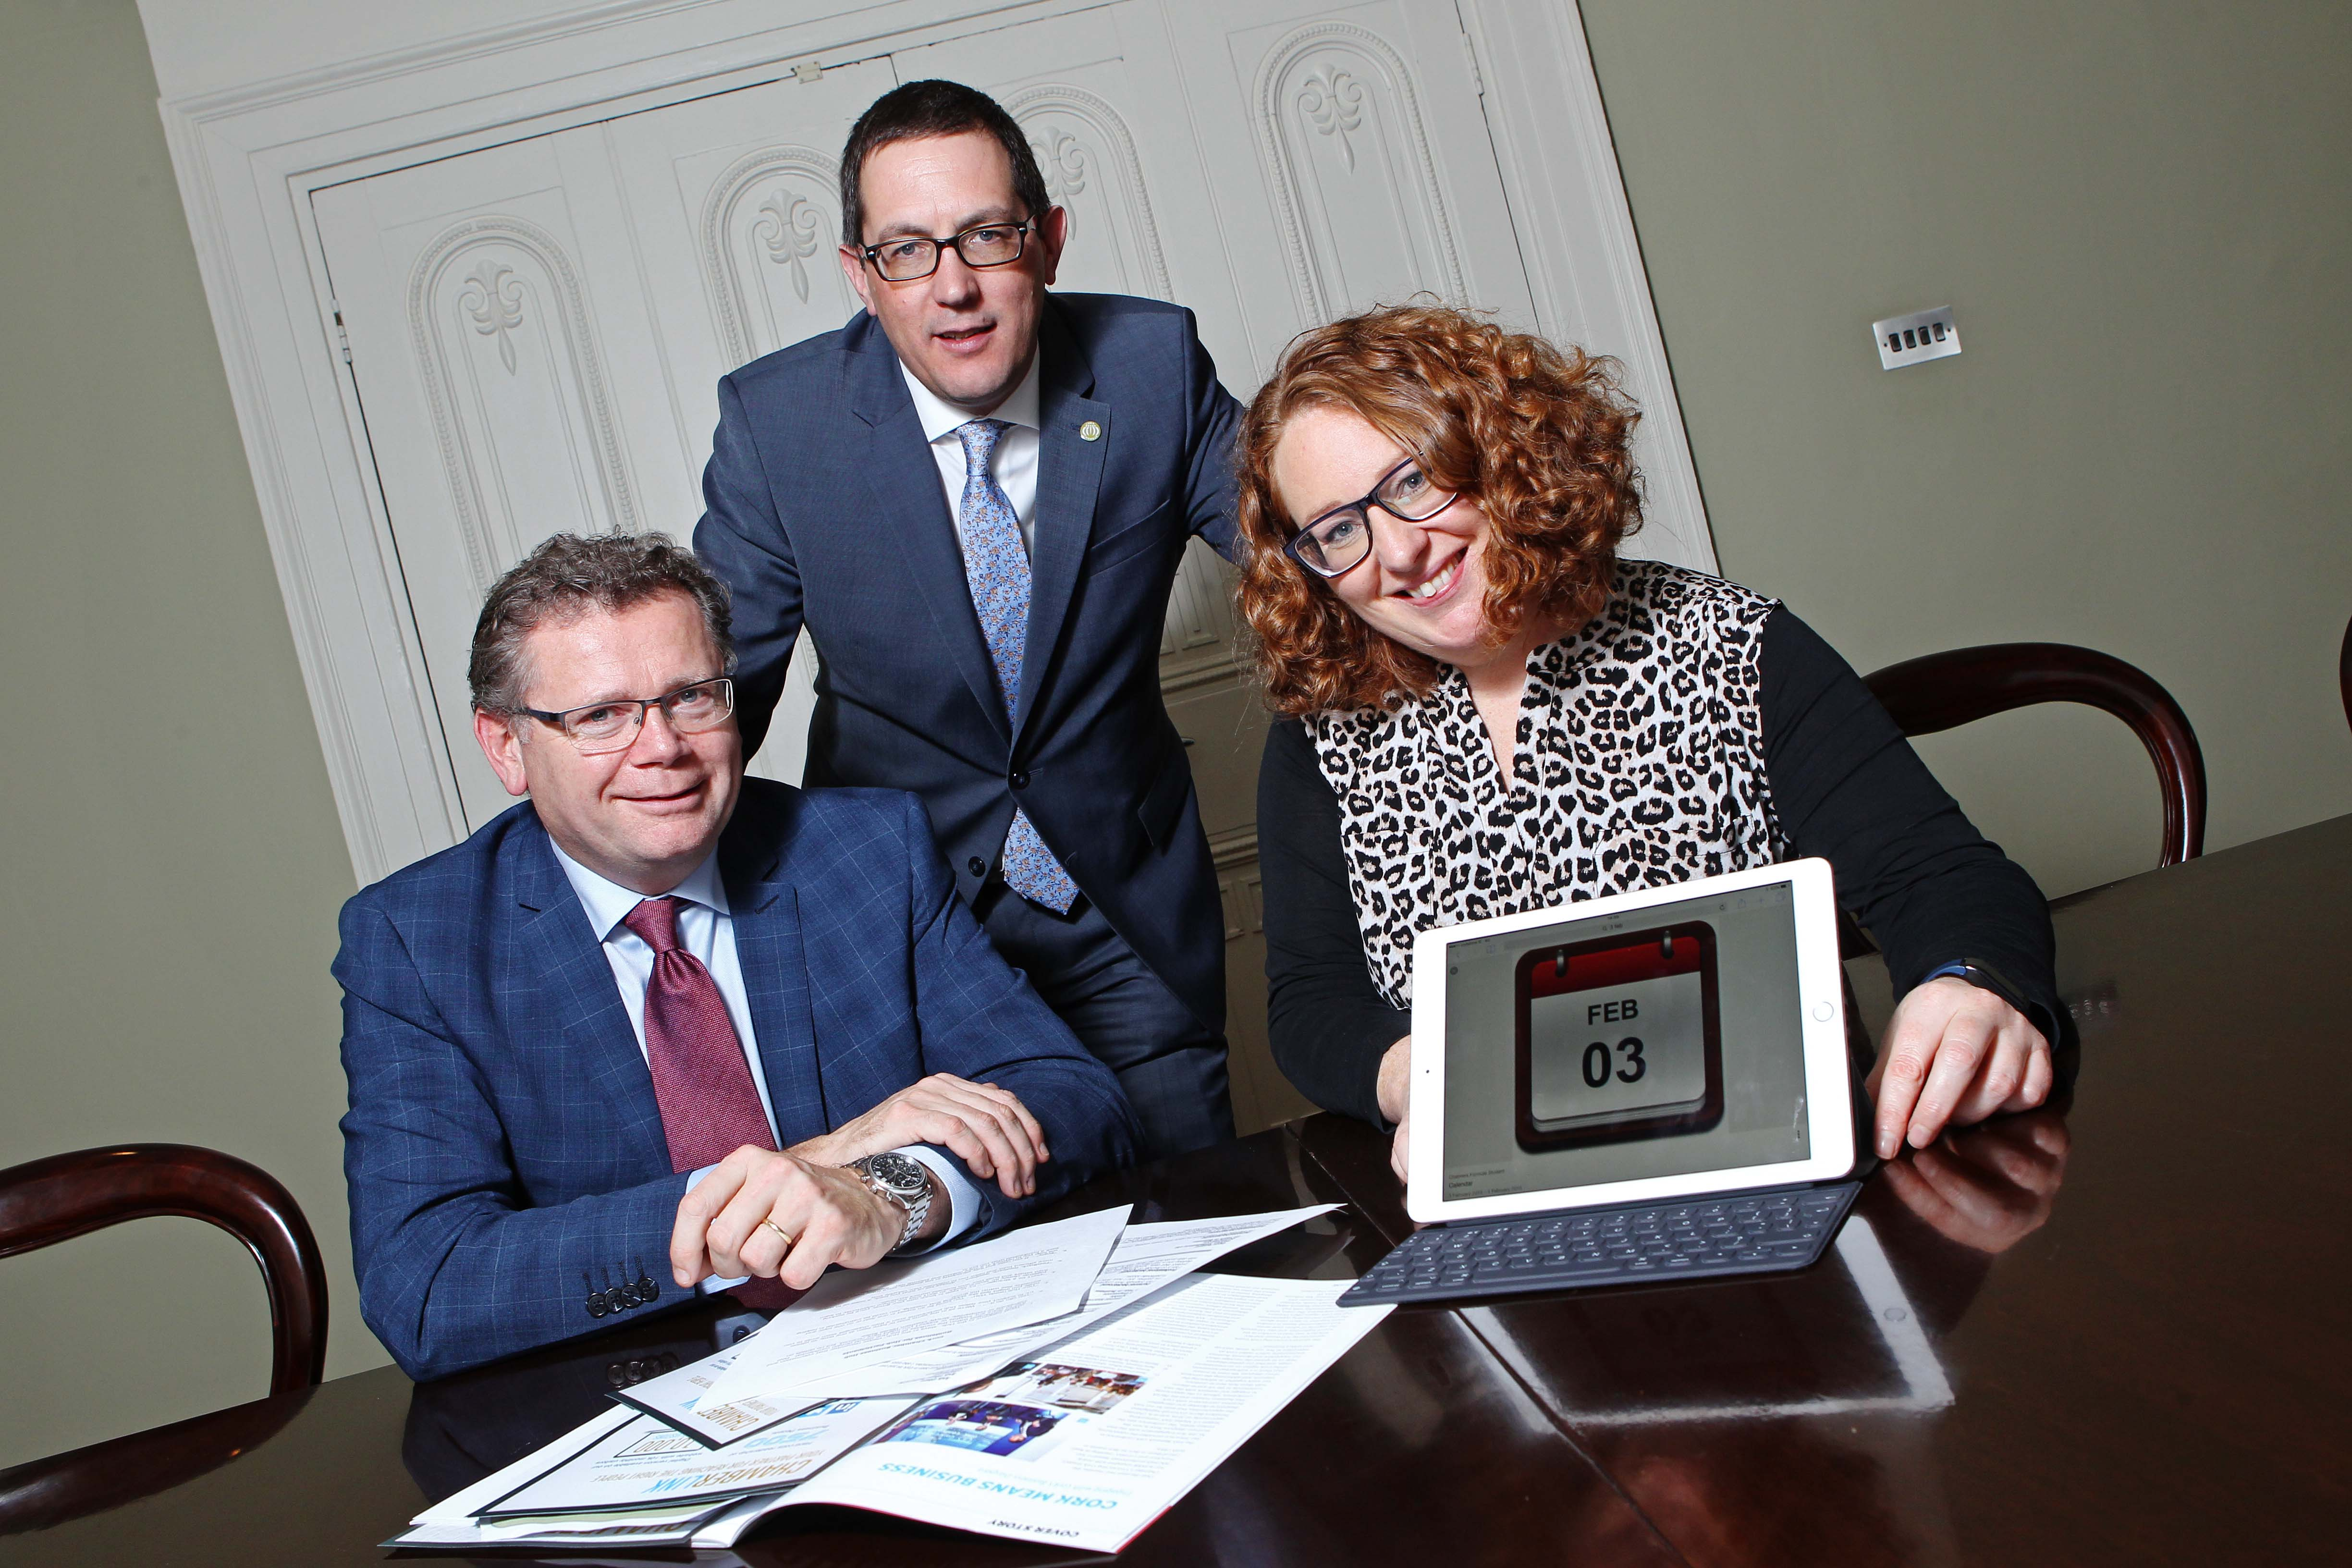 DC 13/12/2016 - REPRO FEE FREE PIC Pictured at the announcement that the Montenotte Hotel will be the lead sponsor at the Cork Chamber Annual Dinner are Conor Healy and Leigh Gillen, Cork Chamber with Frankie Whelehan, The Montenotte Hotel. As the region's leading and largest corporate dinner, the Annual Dinner 2017 taking place on 3rd Feb 2017, promises to be another sell out event. Tickets go on sale at 9:30am on Wednesday, 14 December at www.corkchamber.ie Pic: Diane Cusack